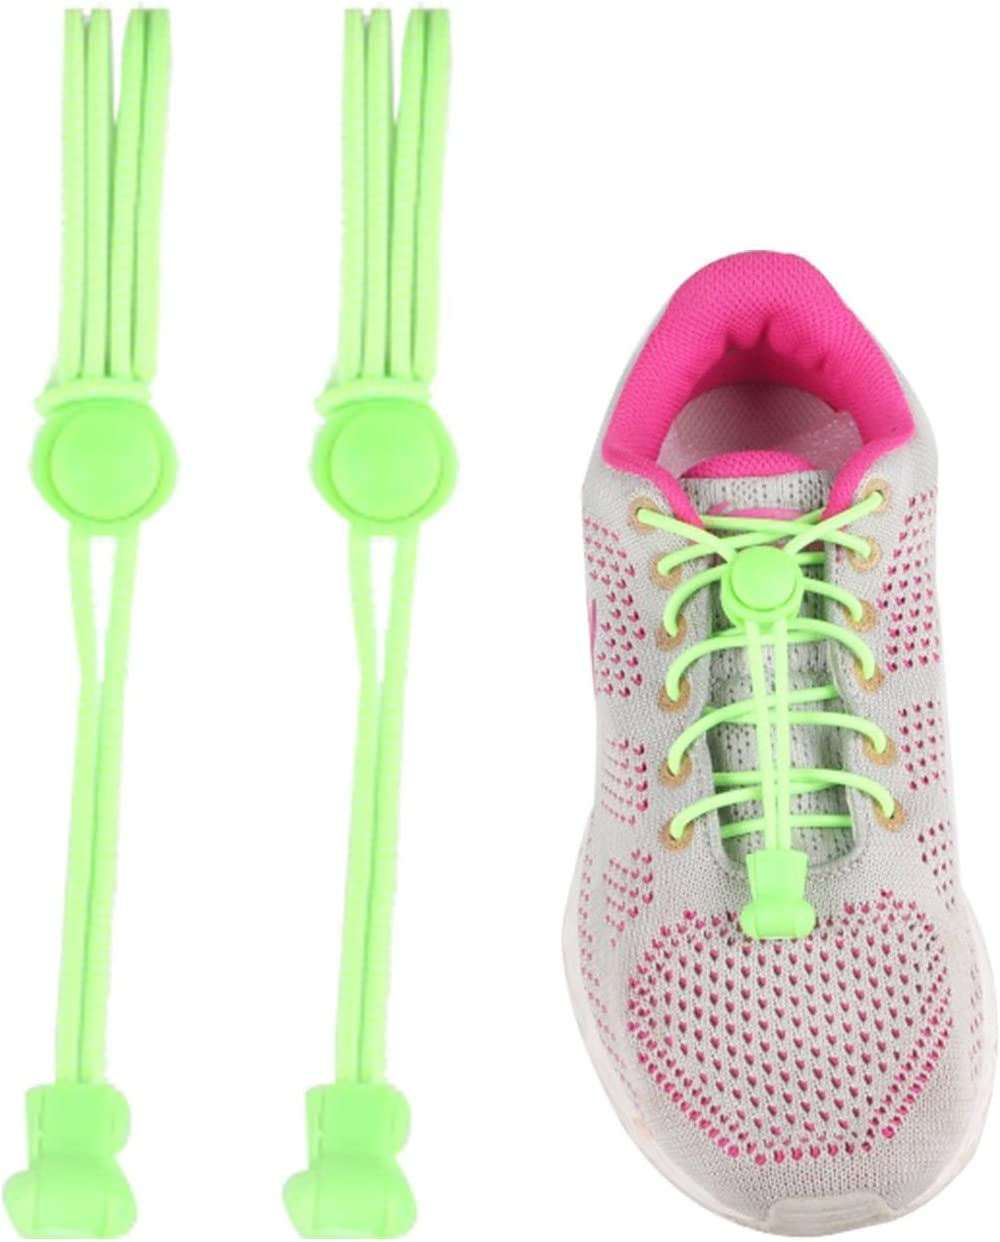 Elastic Locking Shoelaces Shoe Laces Trainer Running Jogging Hiking Sporting NEW